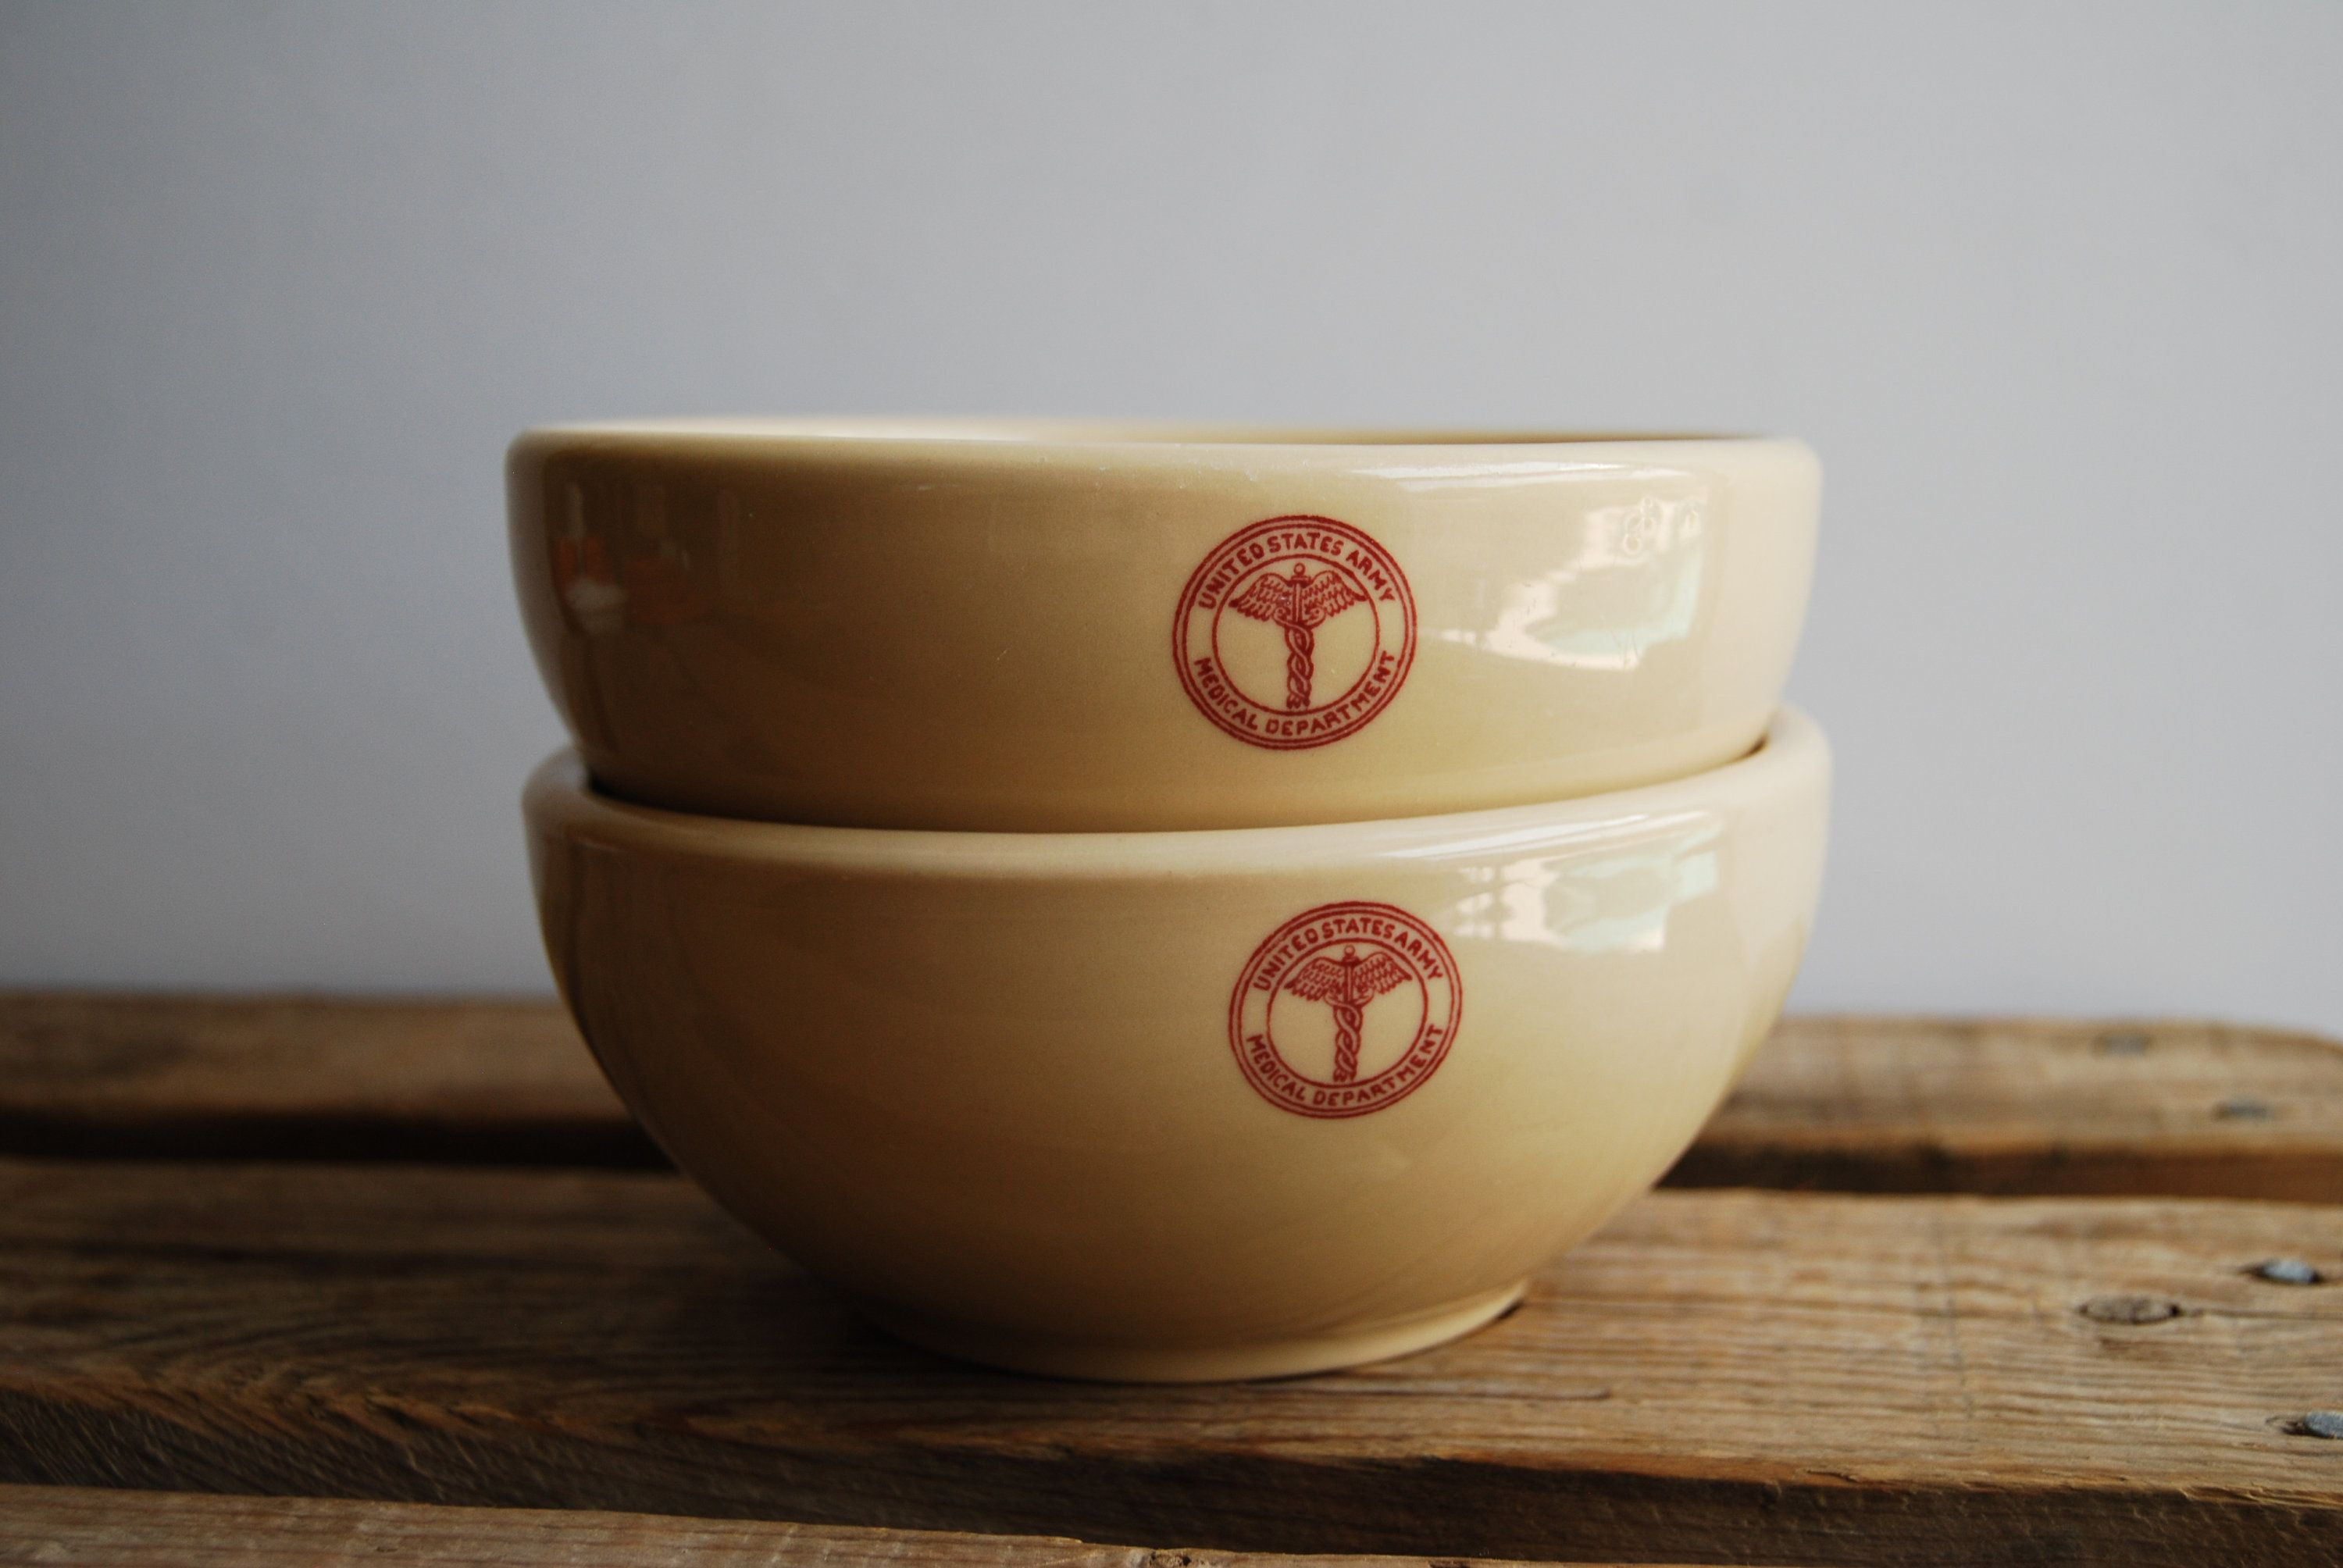 Military Bowls Rare UNITED STATES ARMY Medical Department Bowls